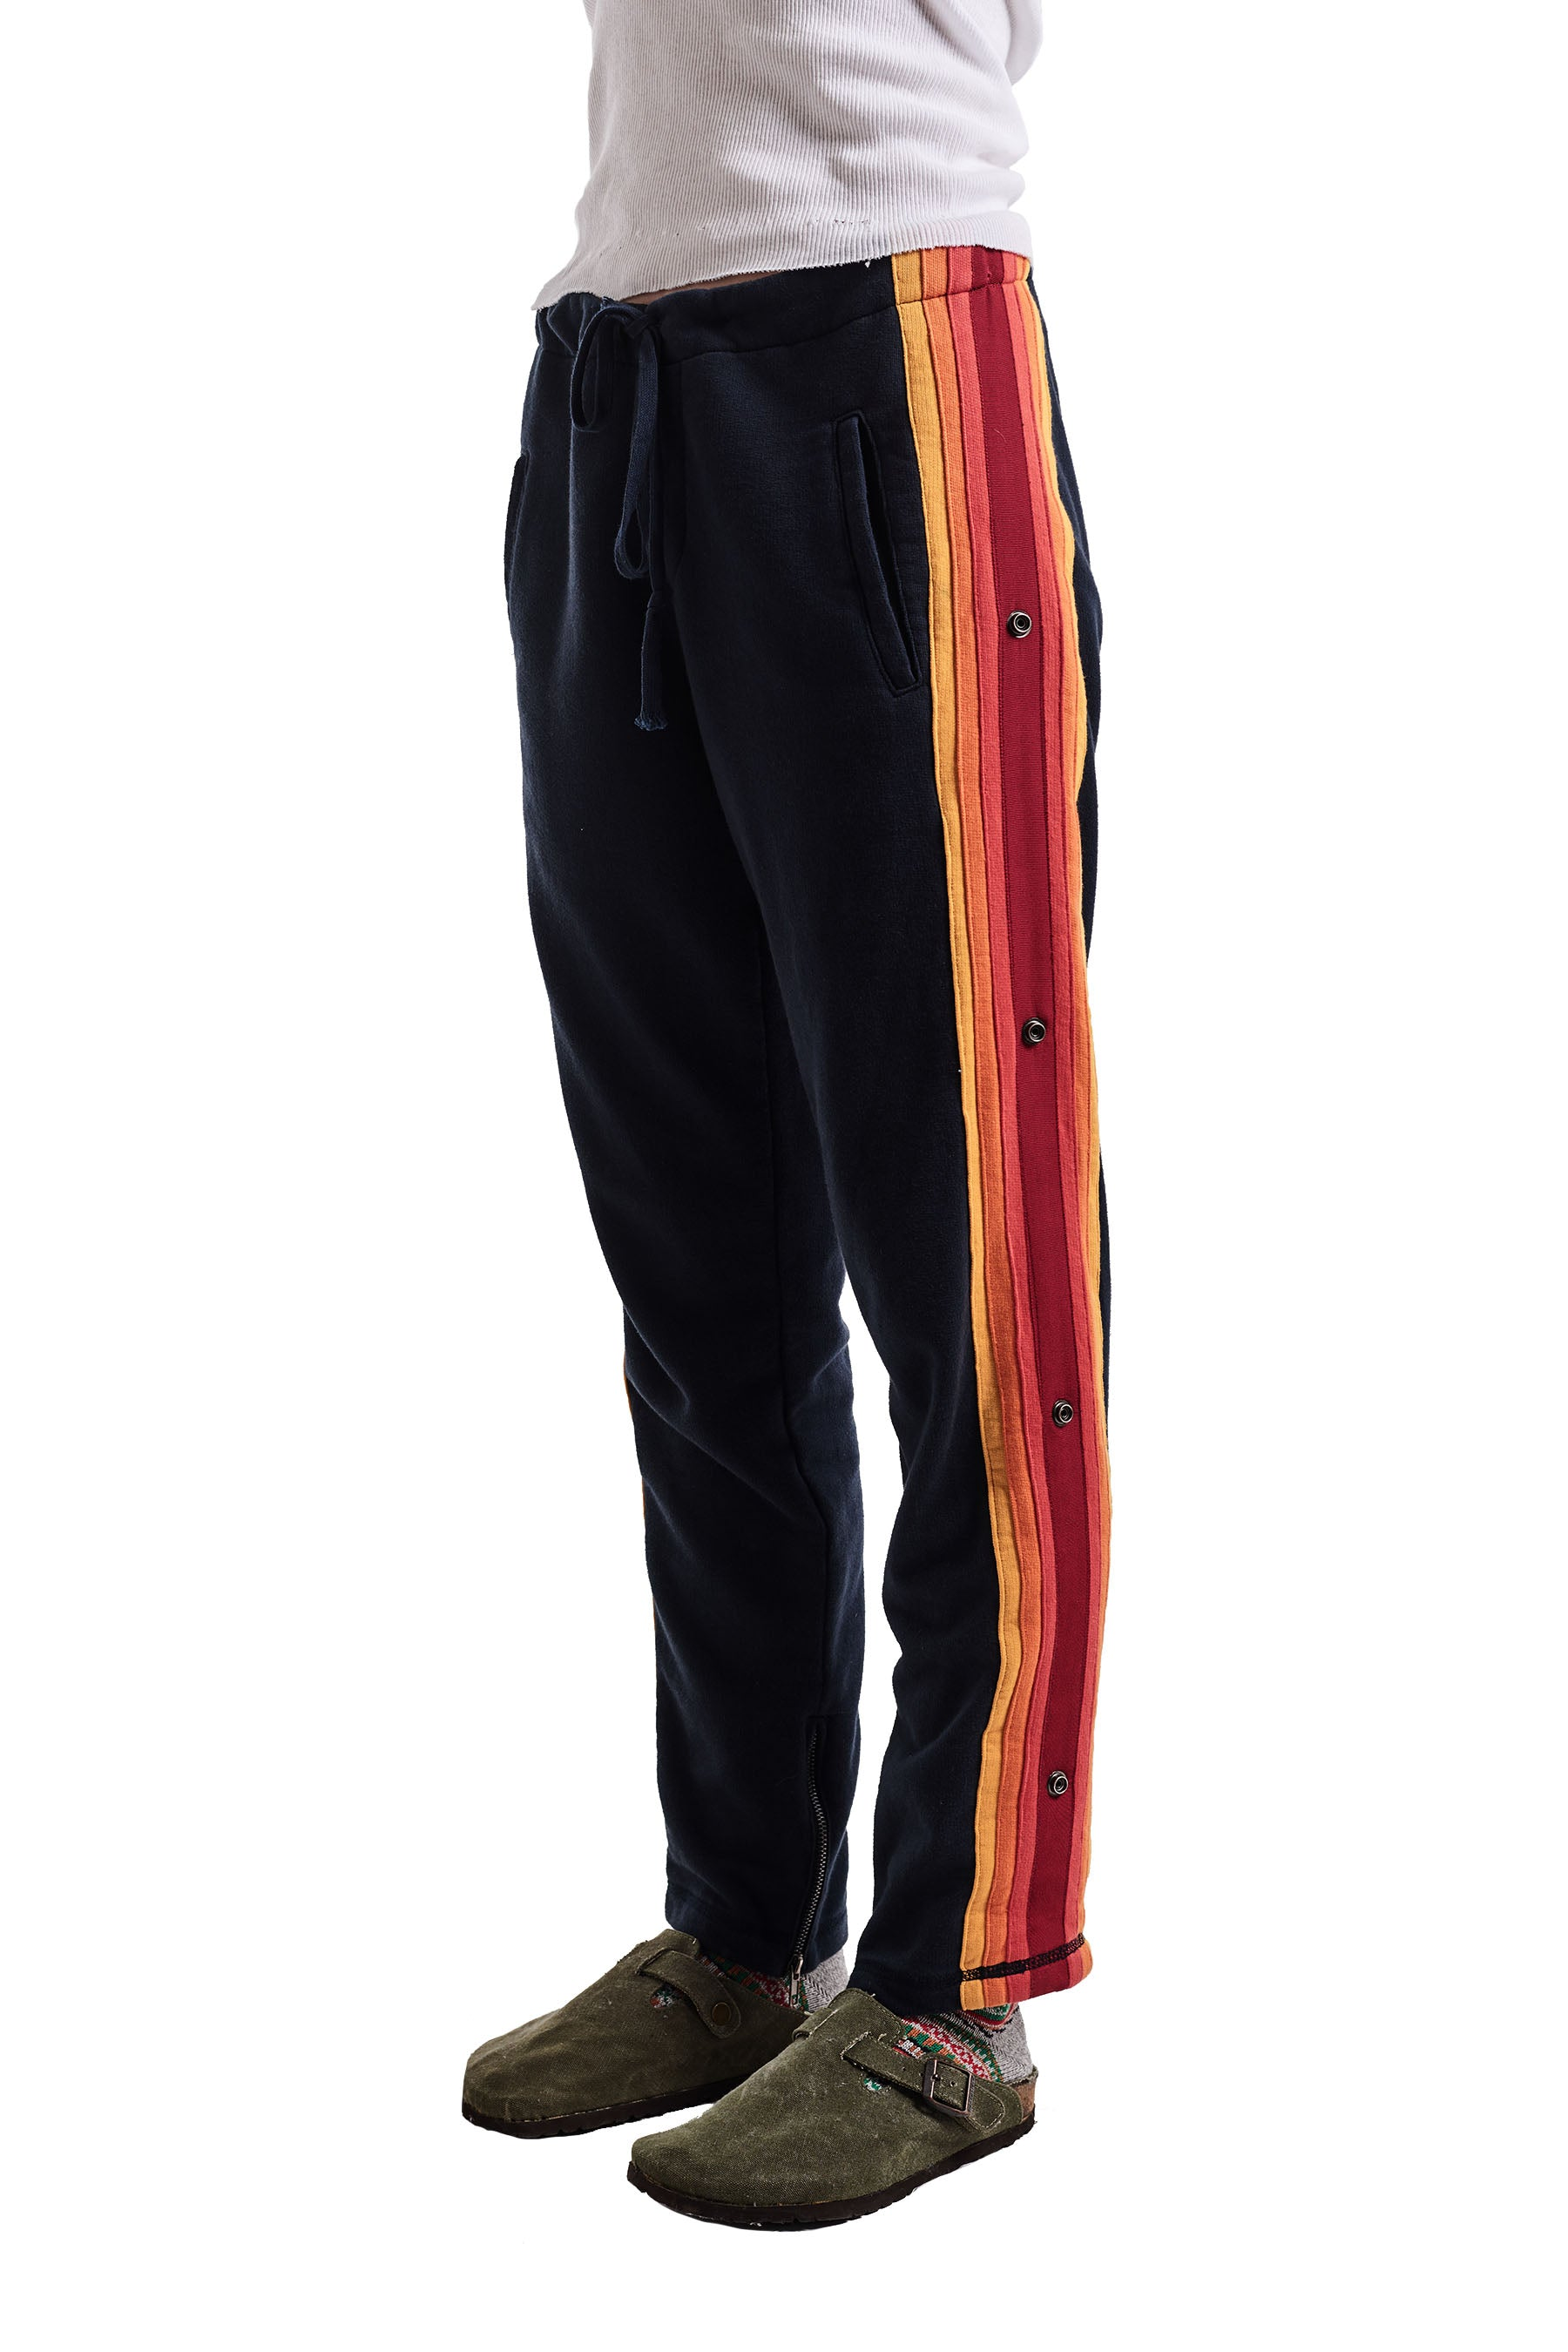 BLACK LOUNGE PANT WITH MIXED STRIPE